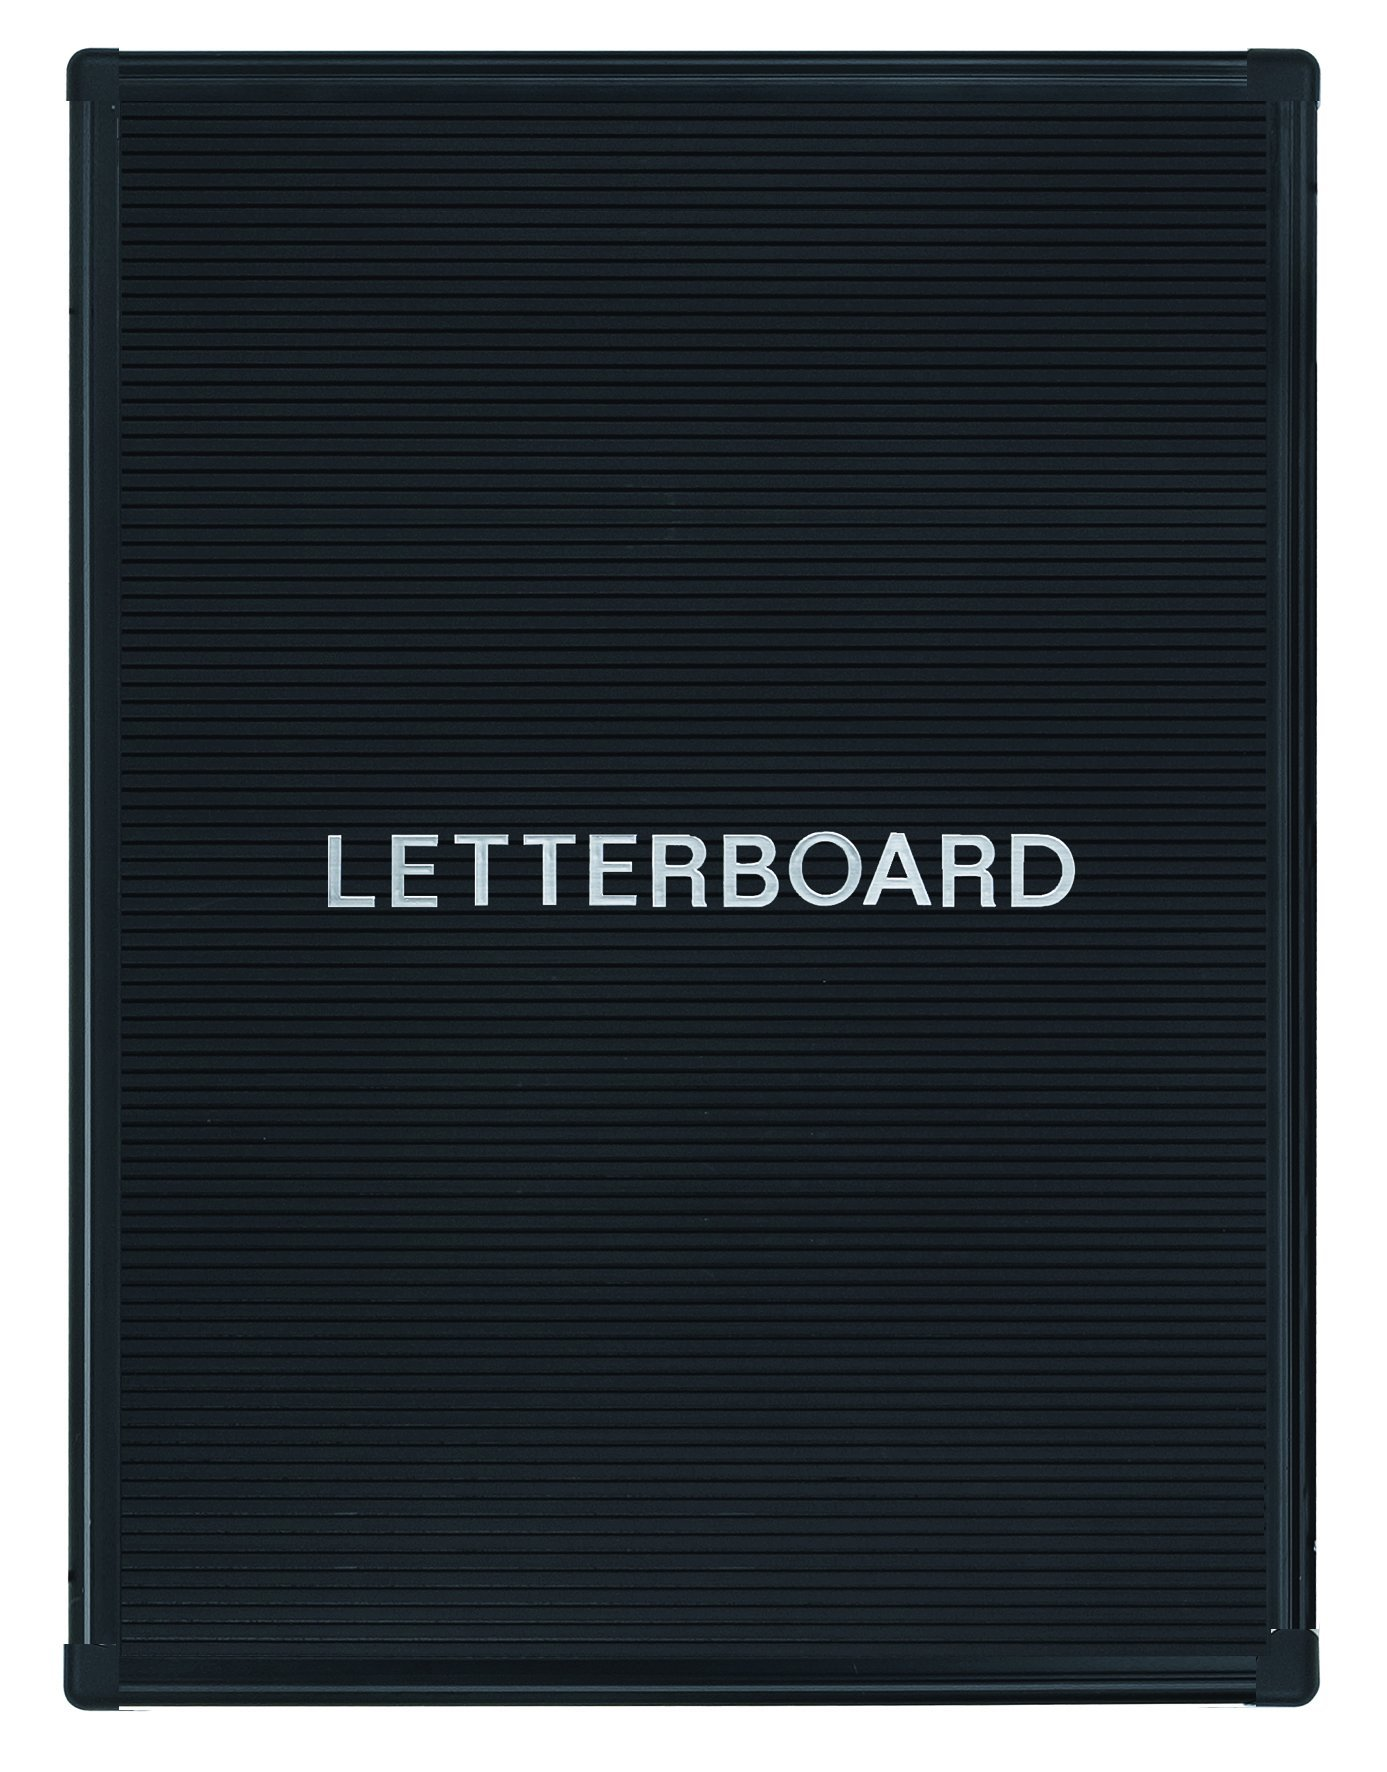 MasterVision Letter Board Welcome/Reception, 22'' x 28'' with Black Aluminum Frame